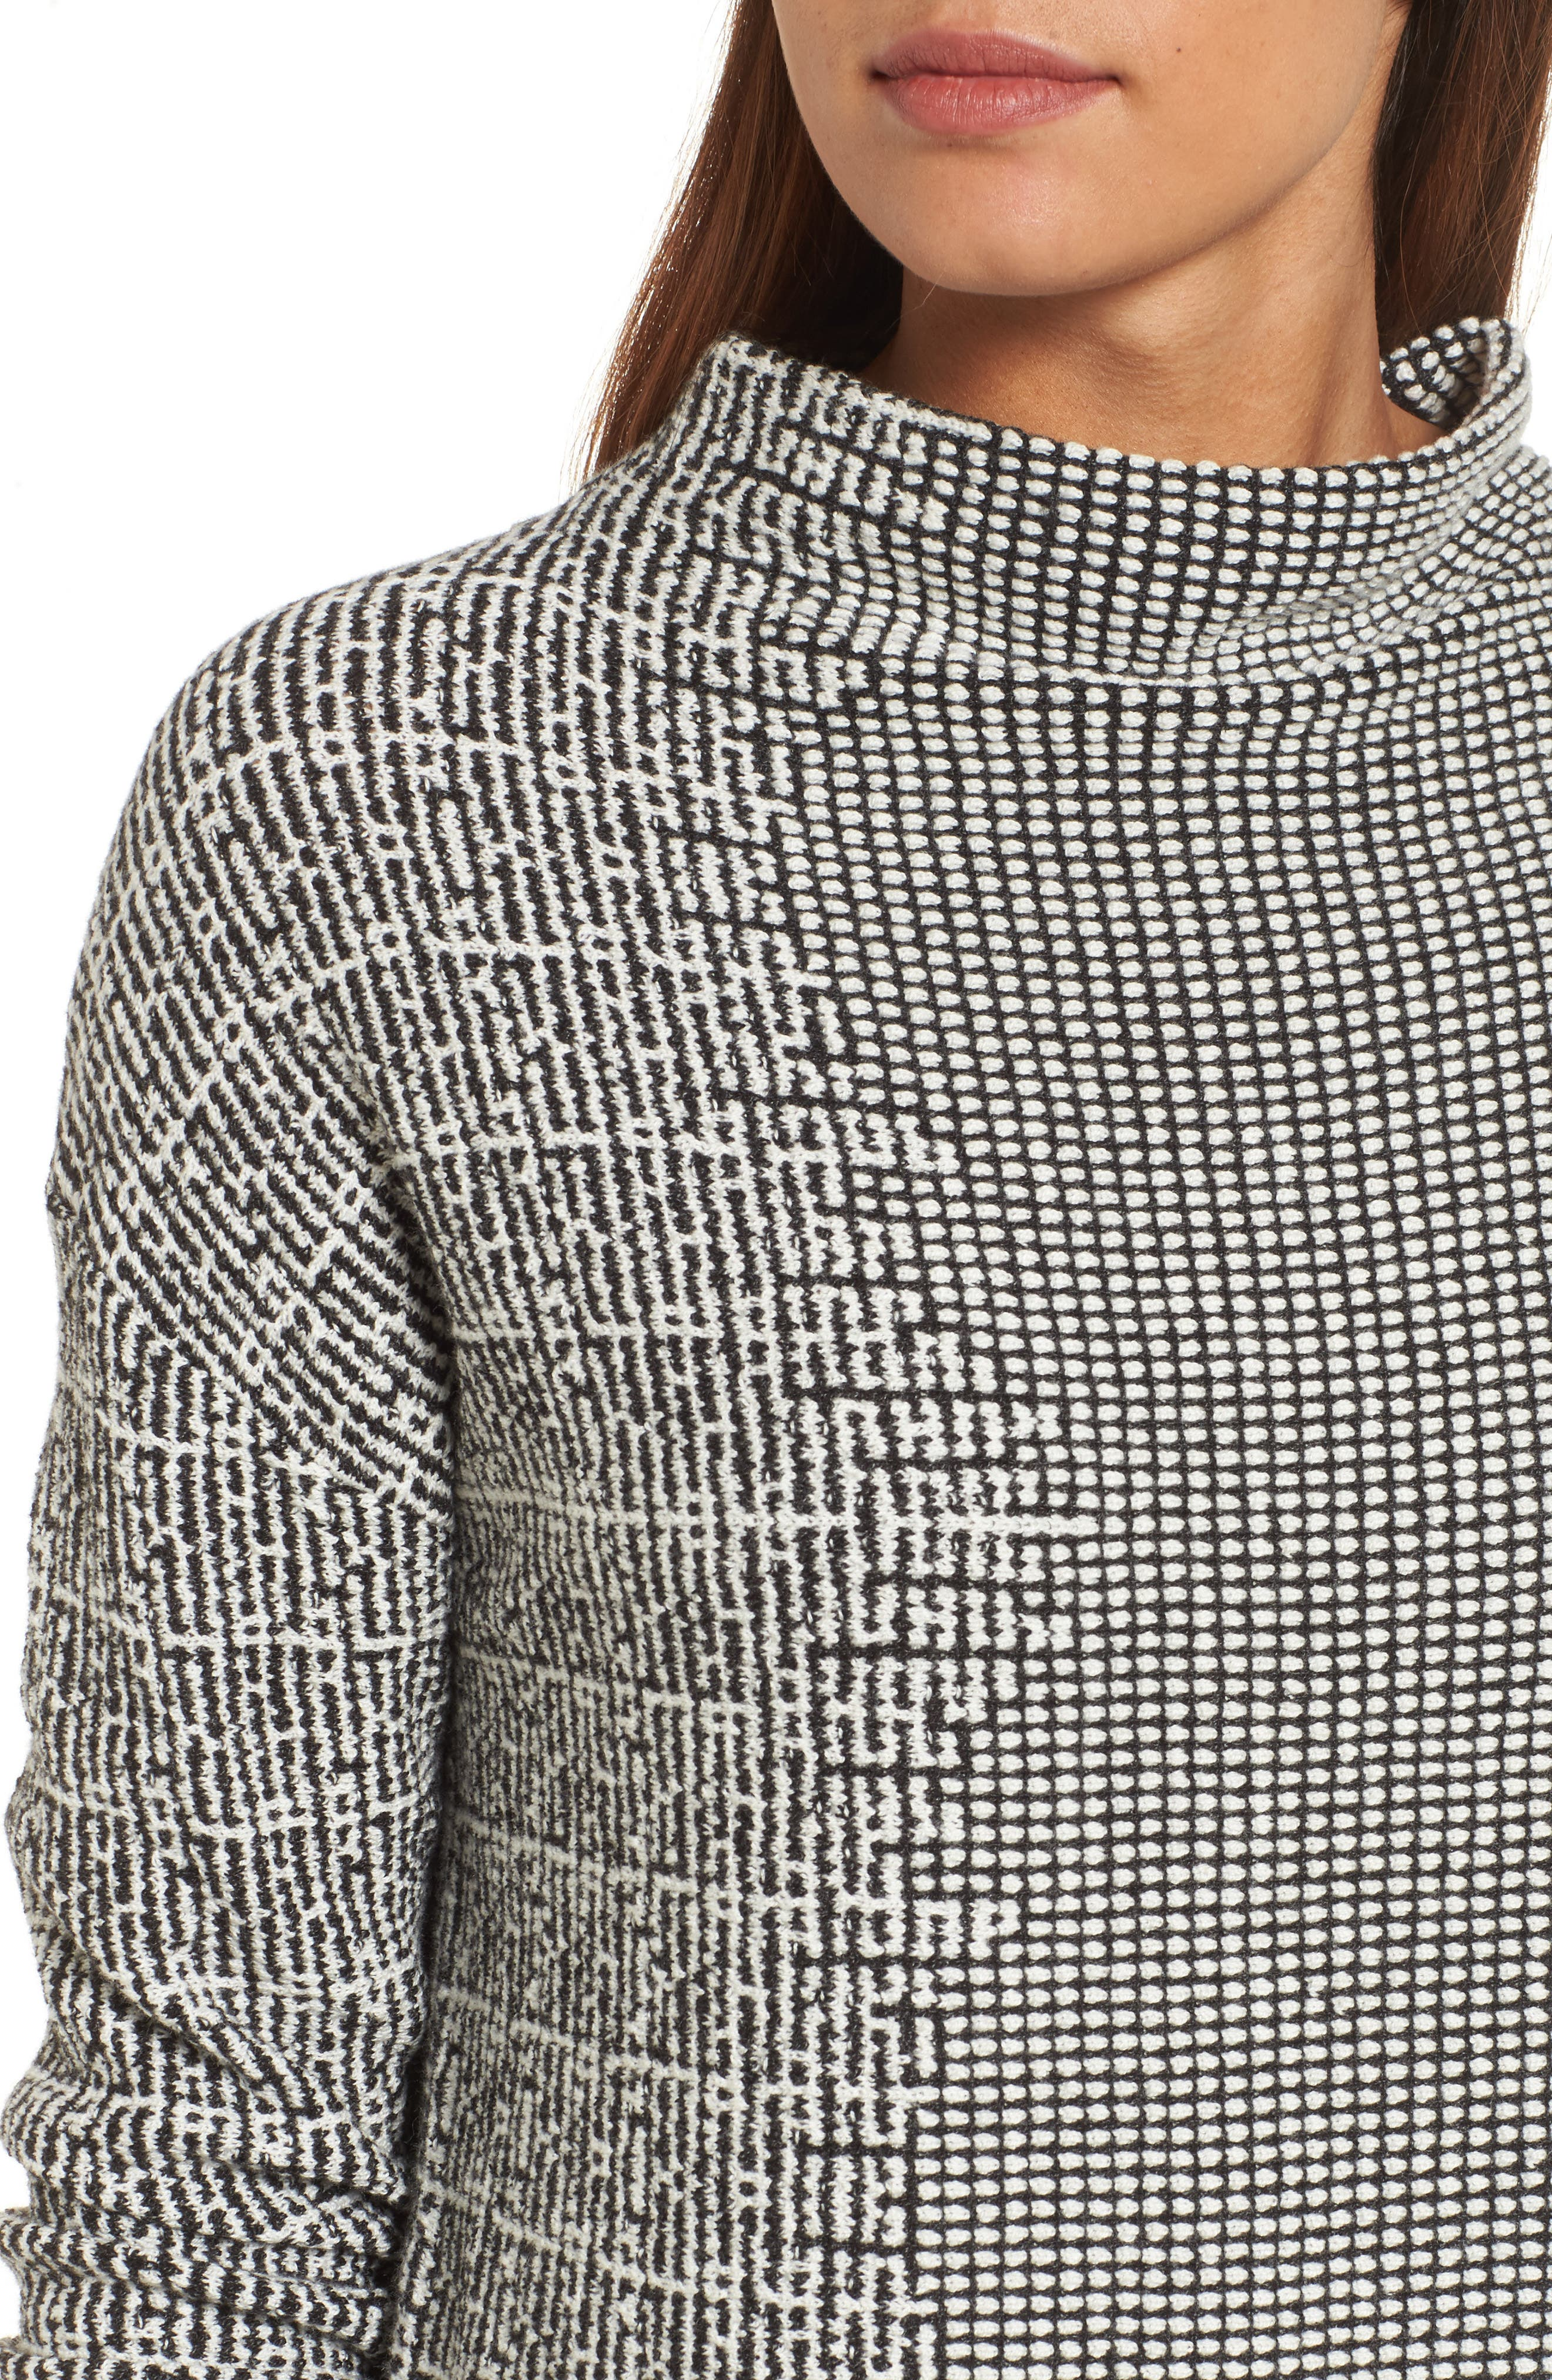 Frosted Fall Sweater,                             Alternate thumbnail 4, color,                             090